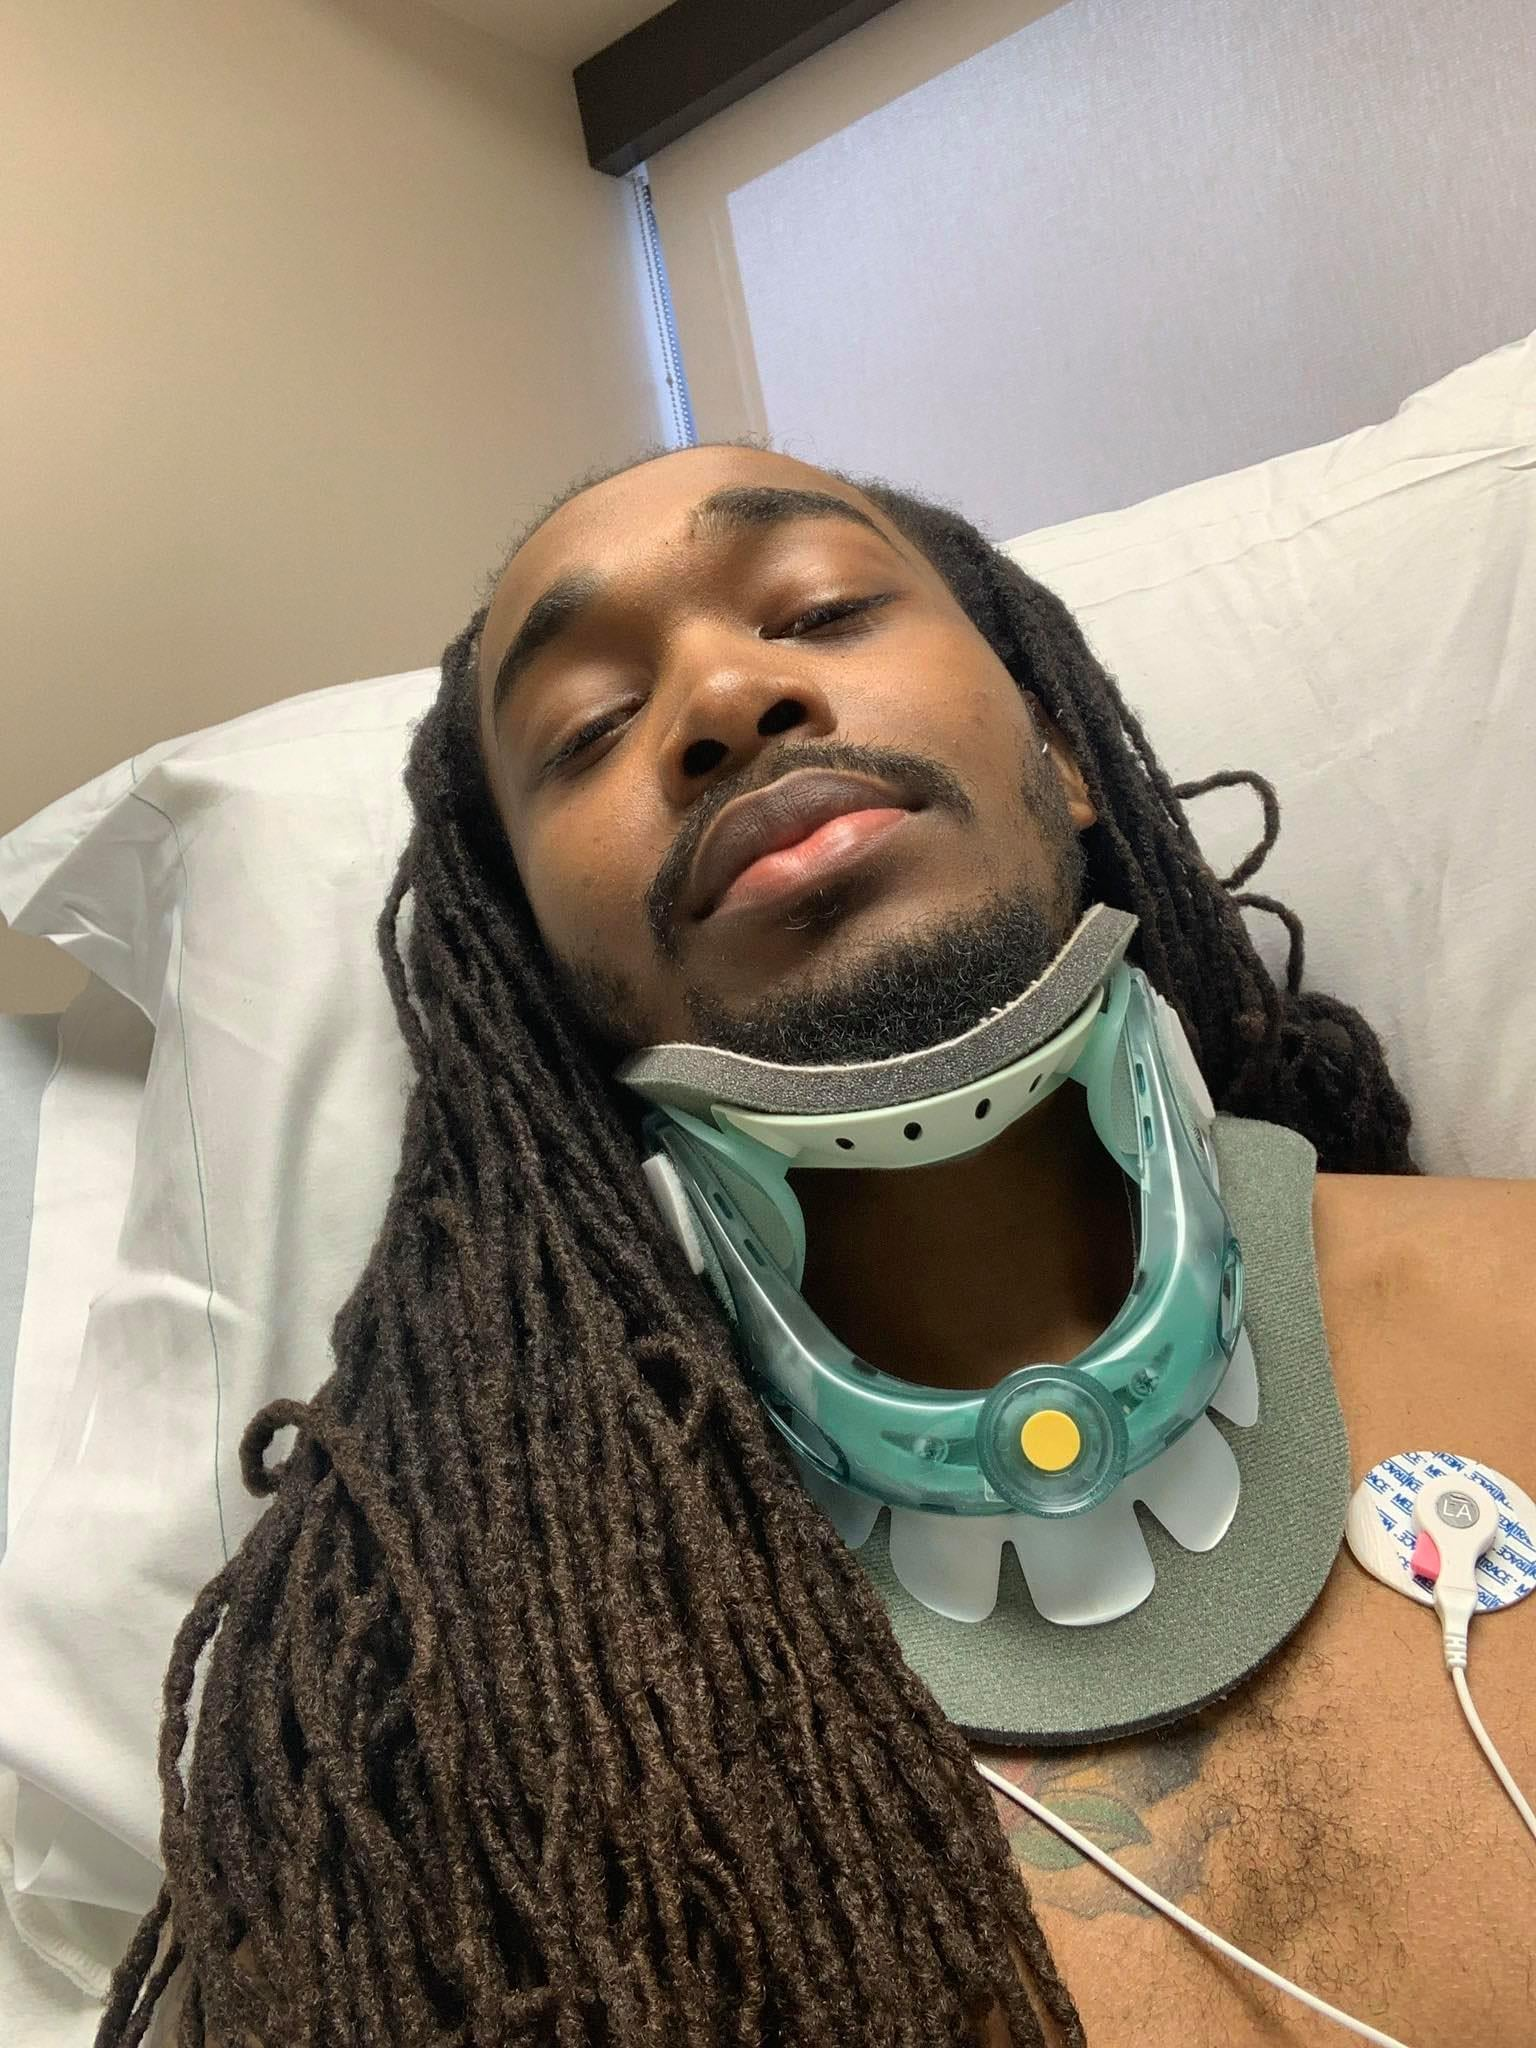 Jeremiah Cribb lays in a hospital bed with a neck brace